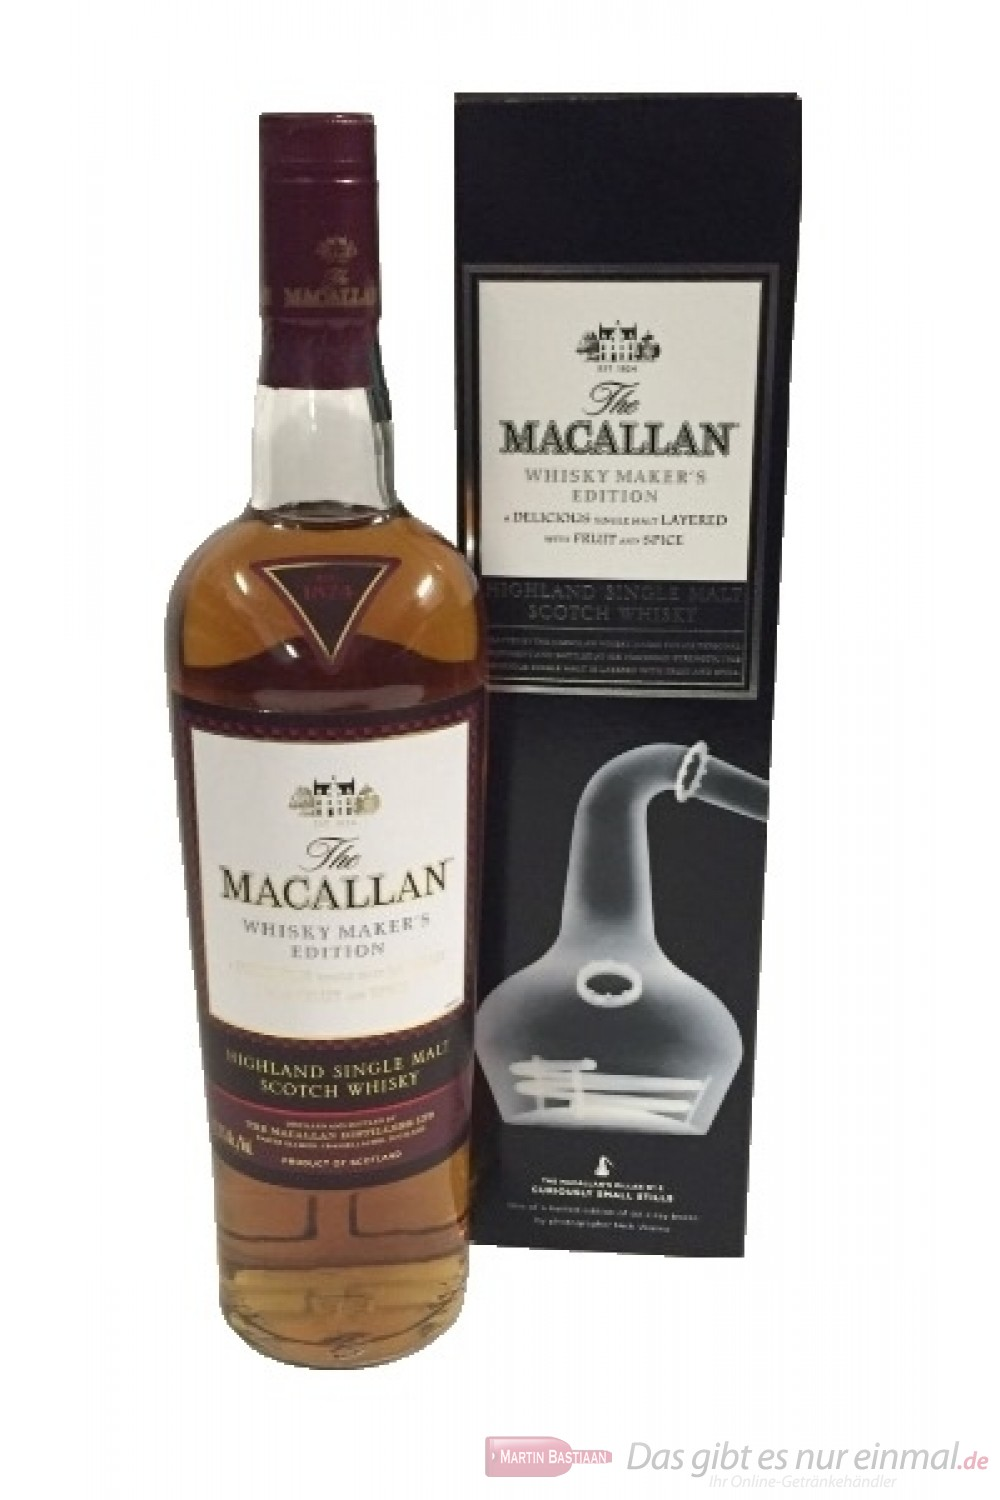 The Macallan Whisky Maker´s Edition Curiously Small Stills